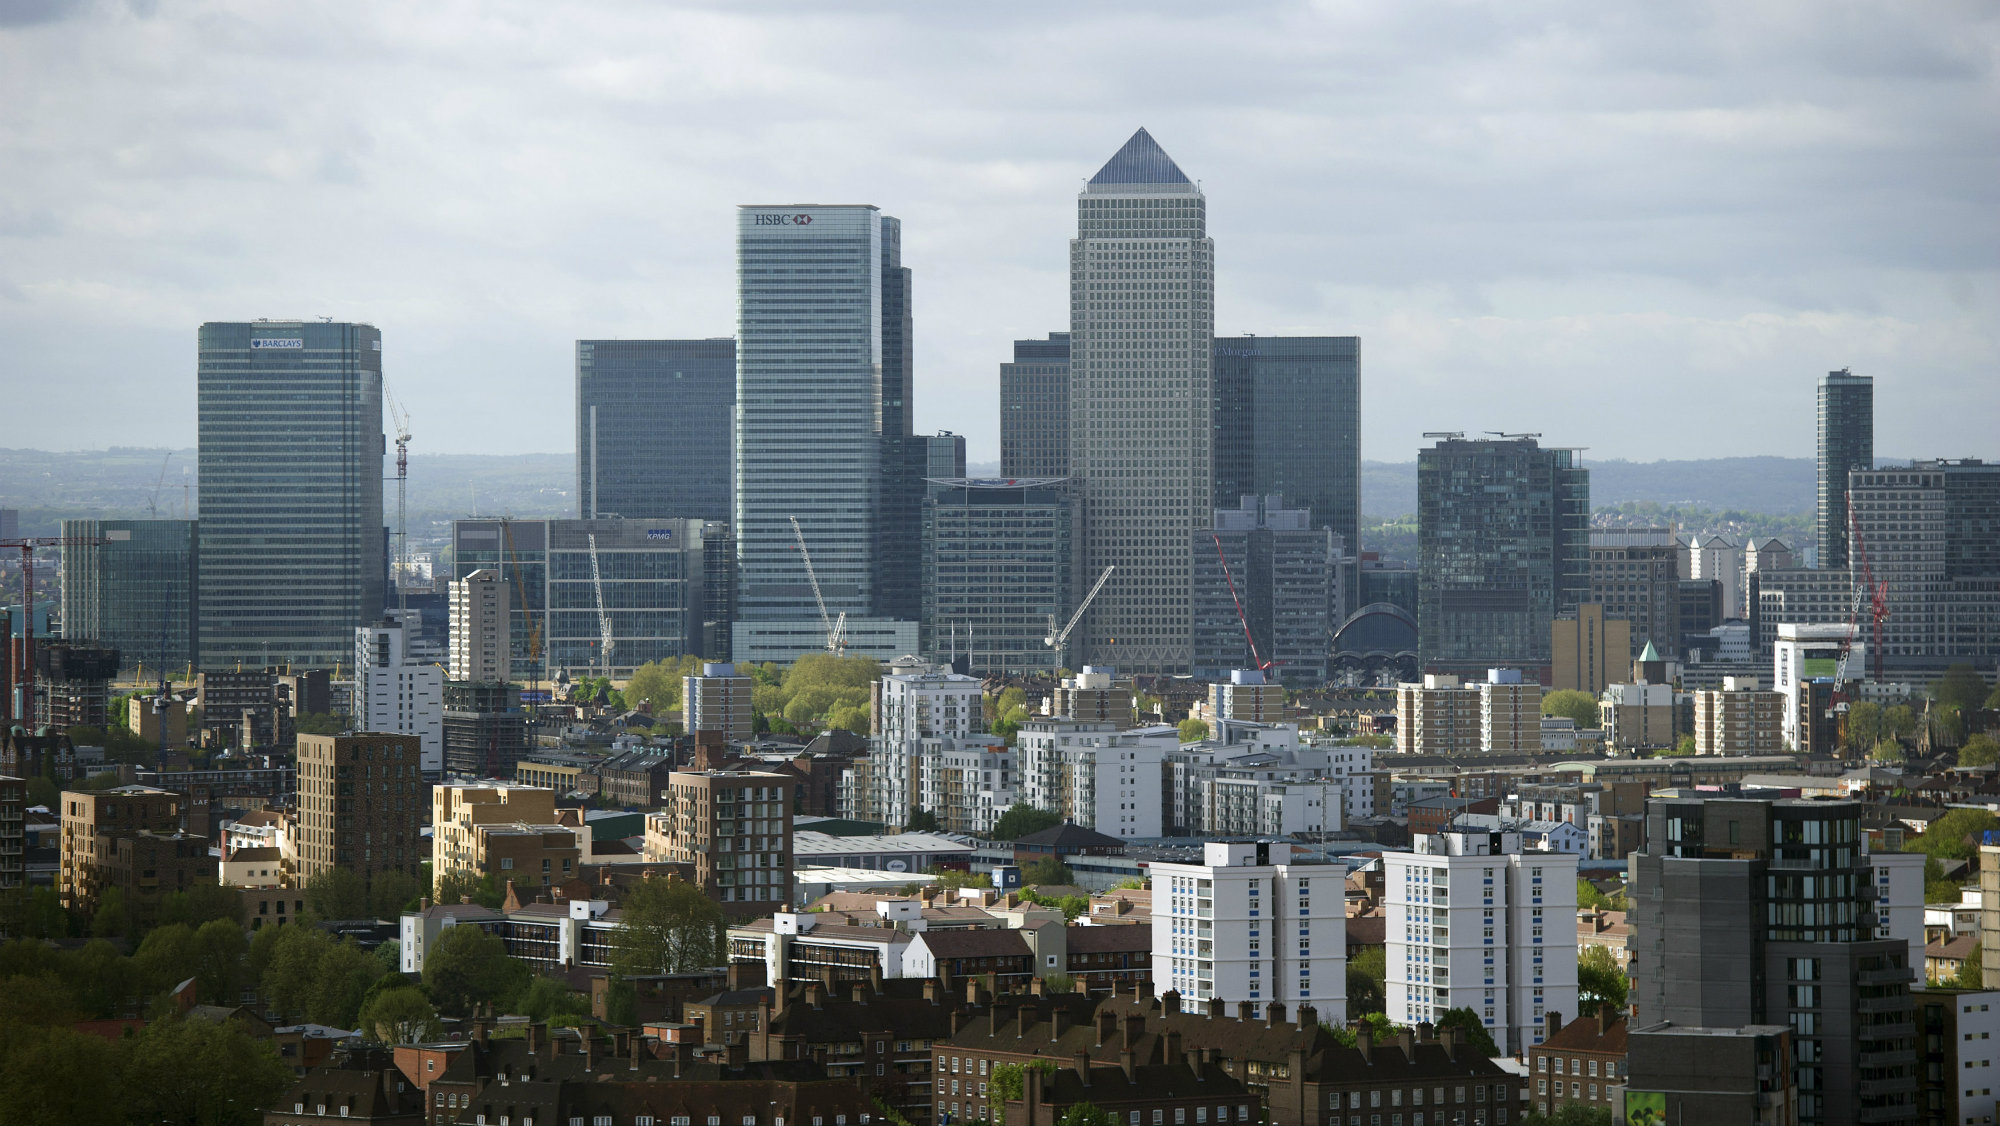 View of London's financial district